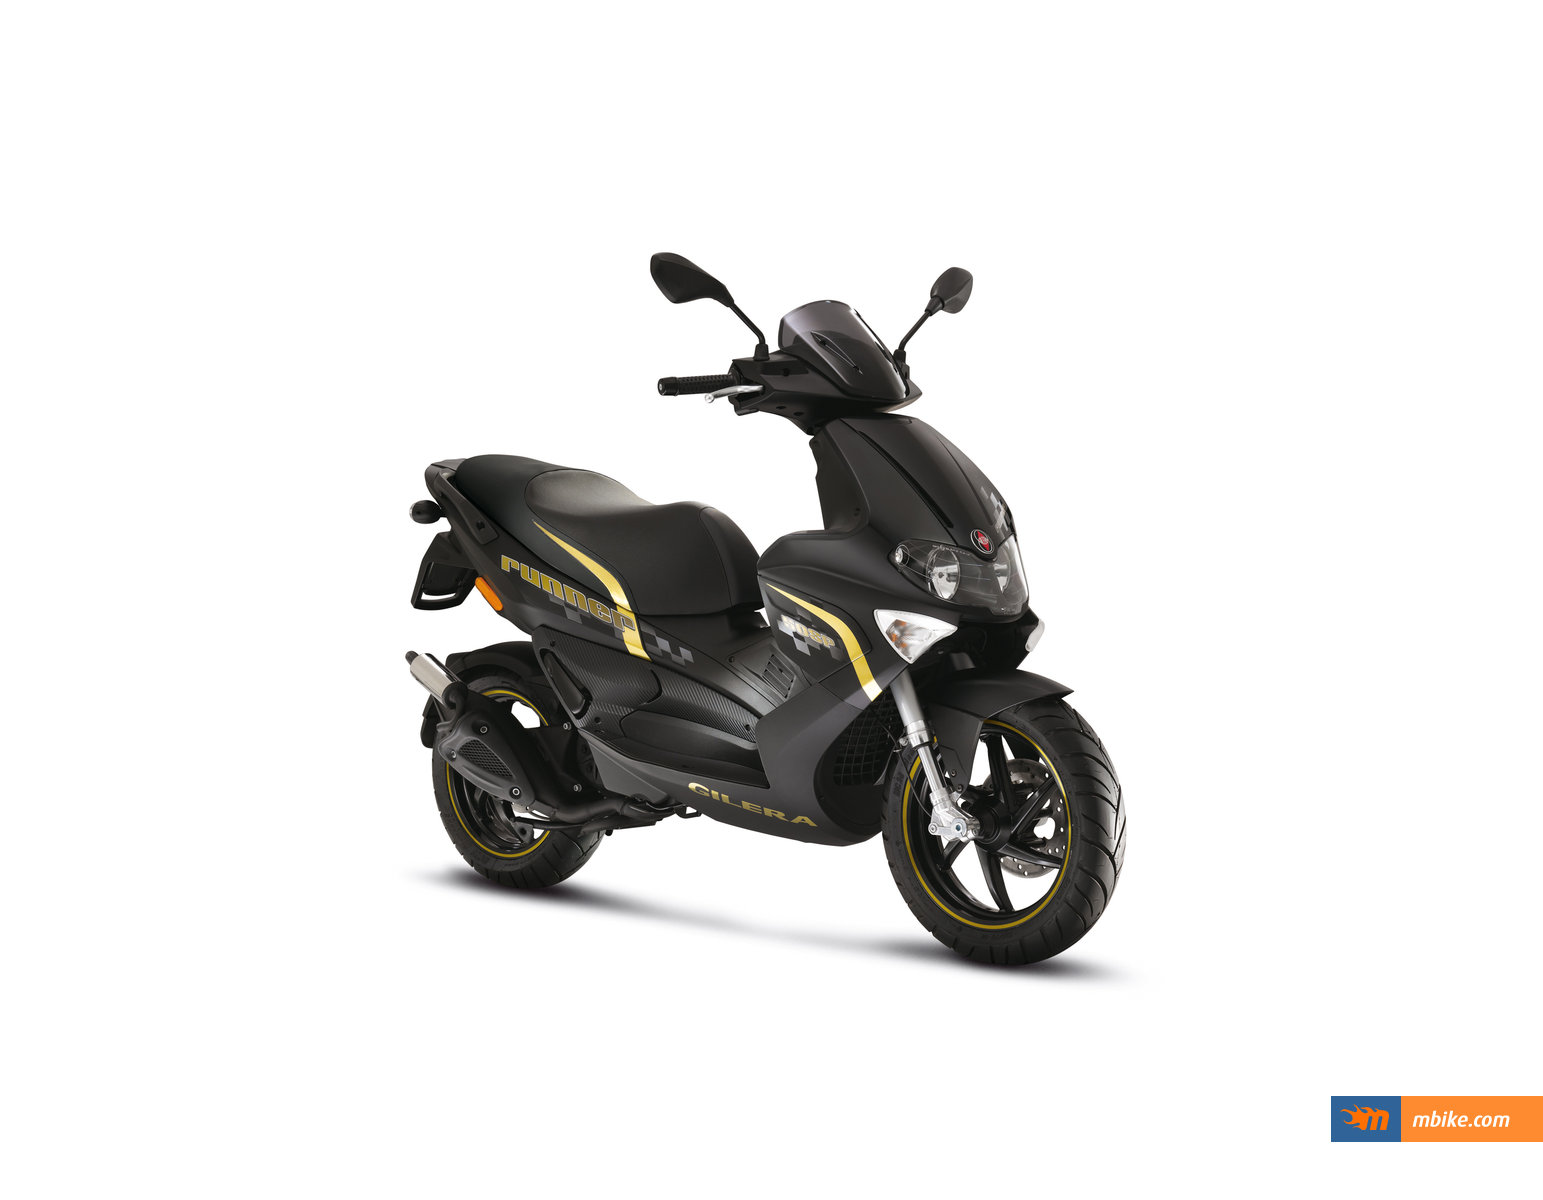 Gilera Runner 50 Black Soul 2015 images #76489